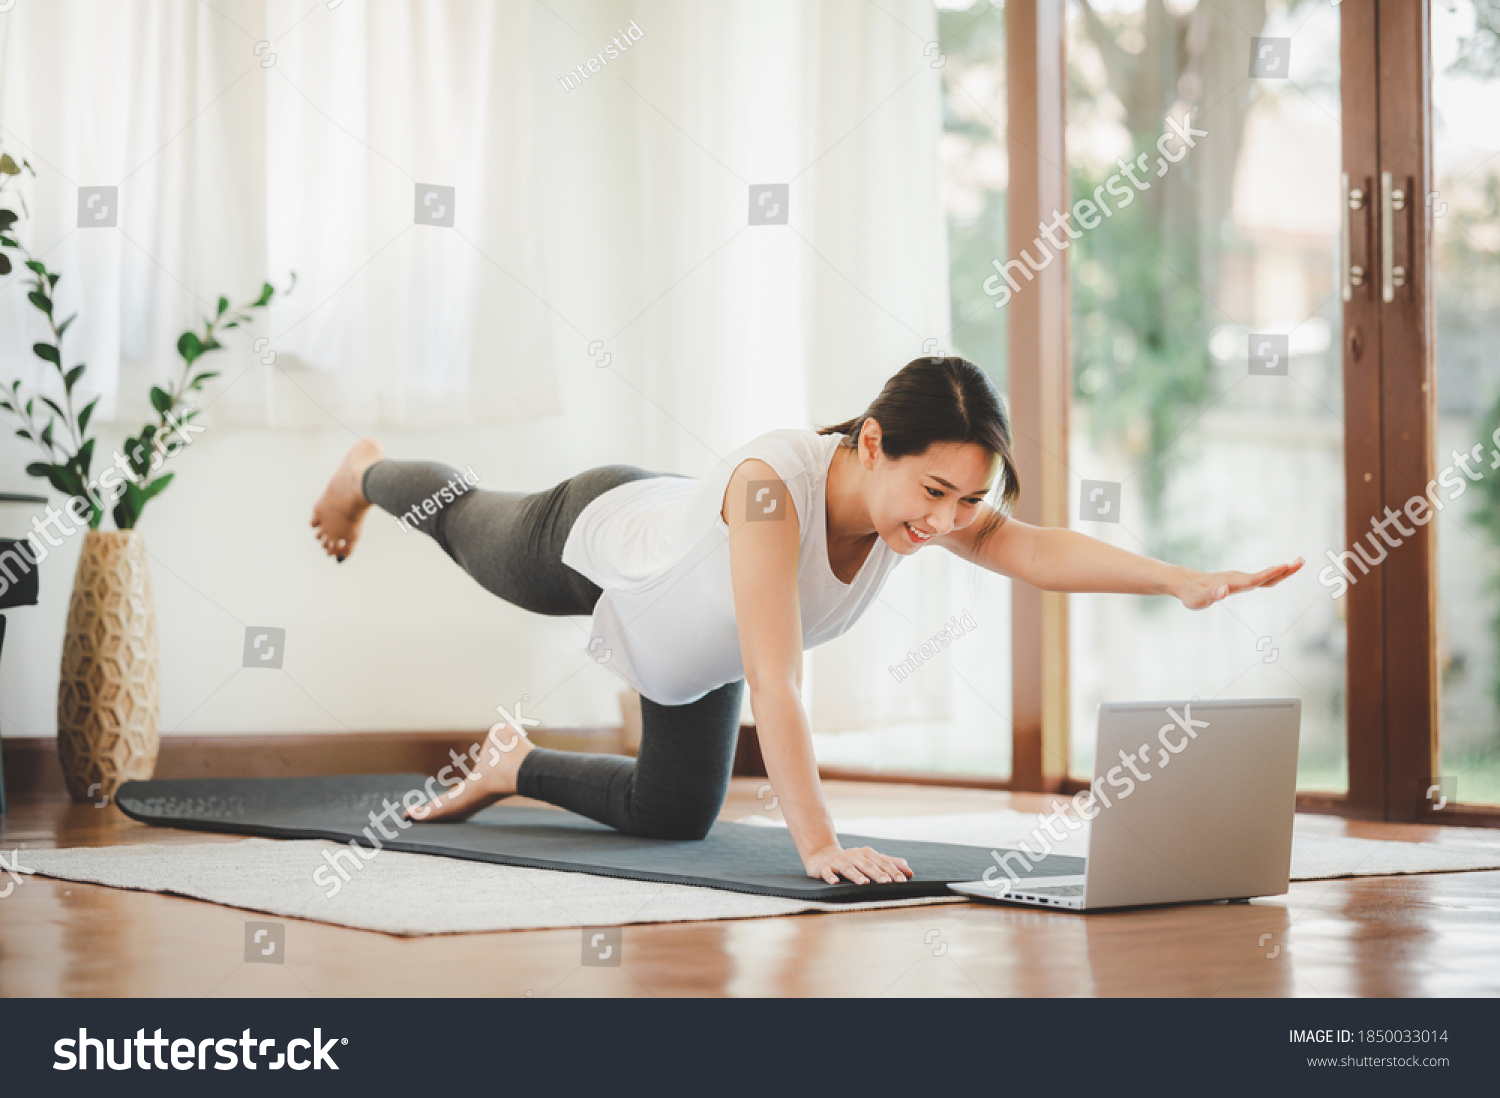 Smiling Asian woman doing one arm one leg plank to exercise core muscle online workout class from laptop at home in living room. Self isolation and workout at home during COVID-19. #1850033014